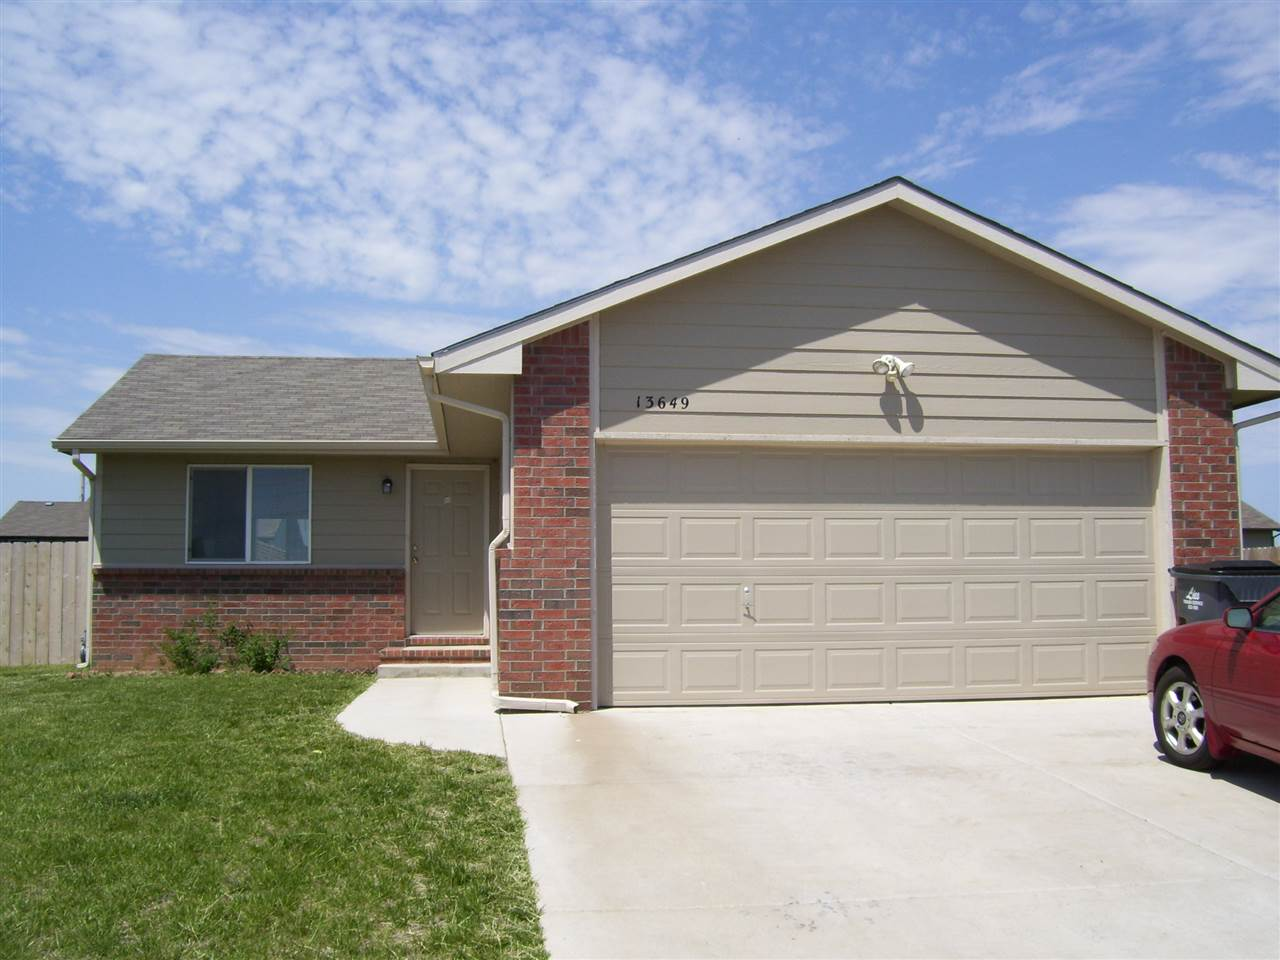 3 bedroom, 2 bath home in Copper Gate Estates.  Currently an occupied investment property.  Great lo